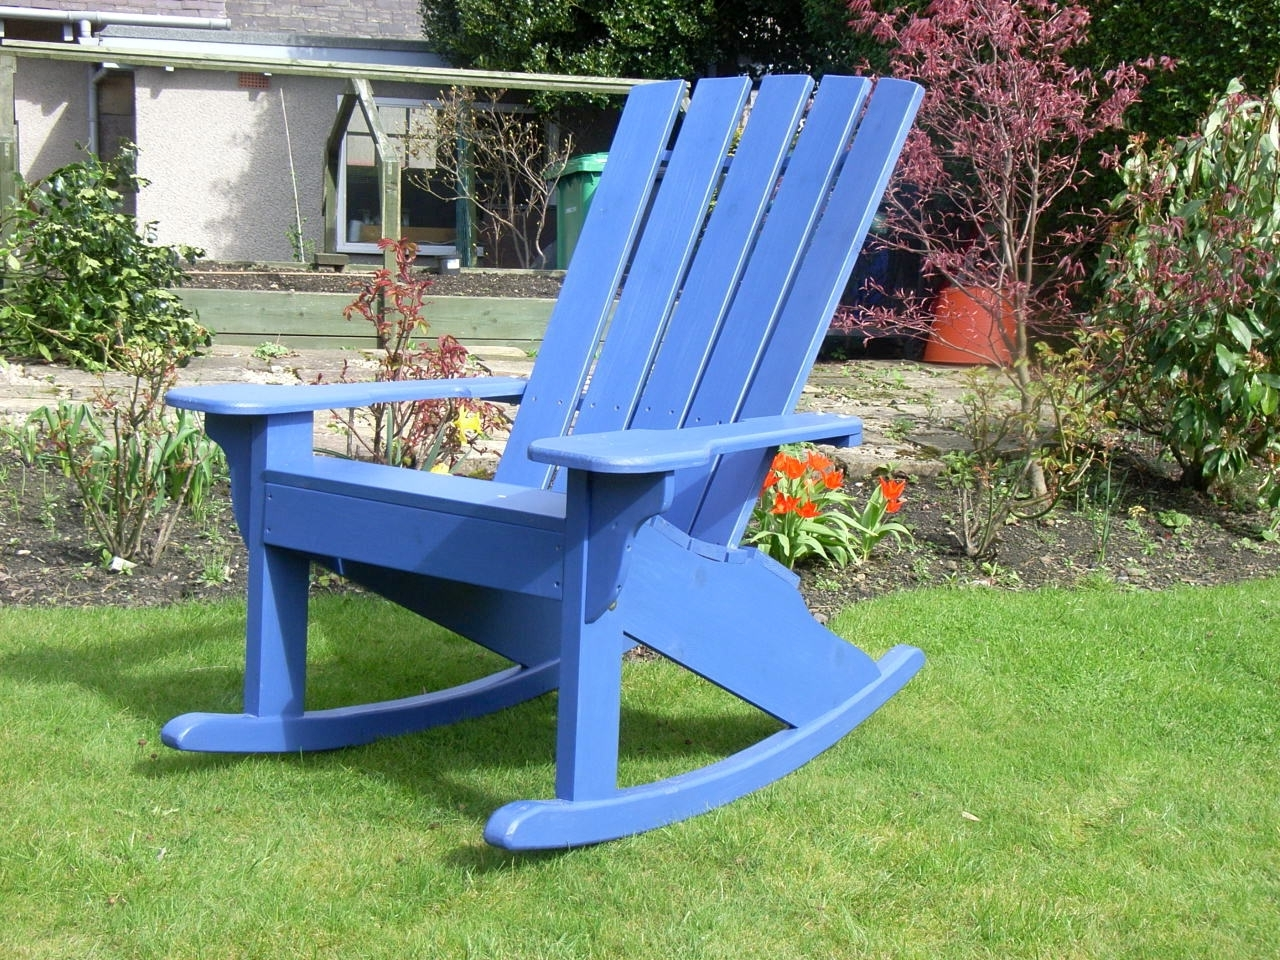 Rocking Chairs For Garden Intended For Current The Adirondack Rocker Chair – Sunshine Chairs (View 11 of 15)